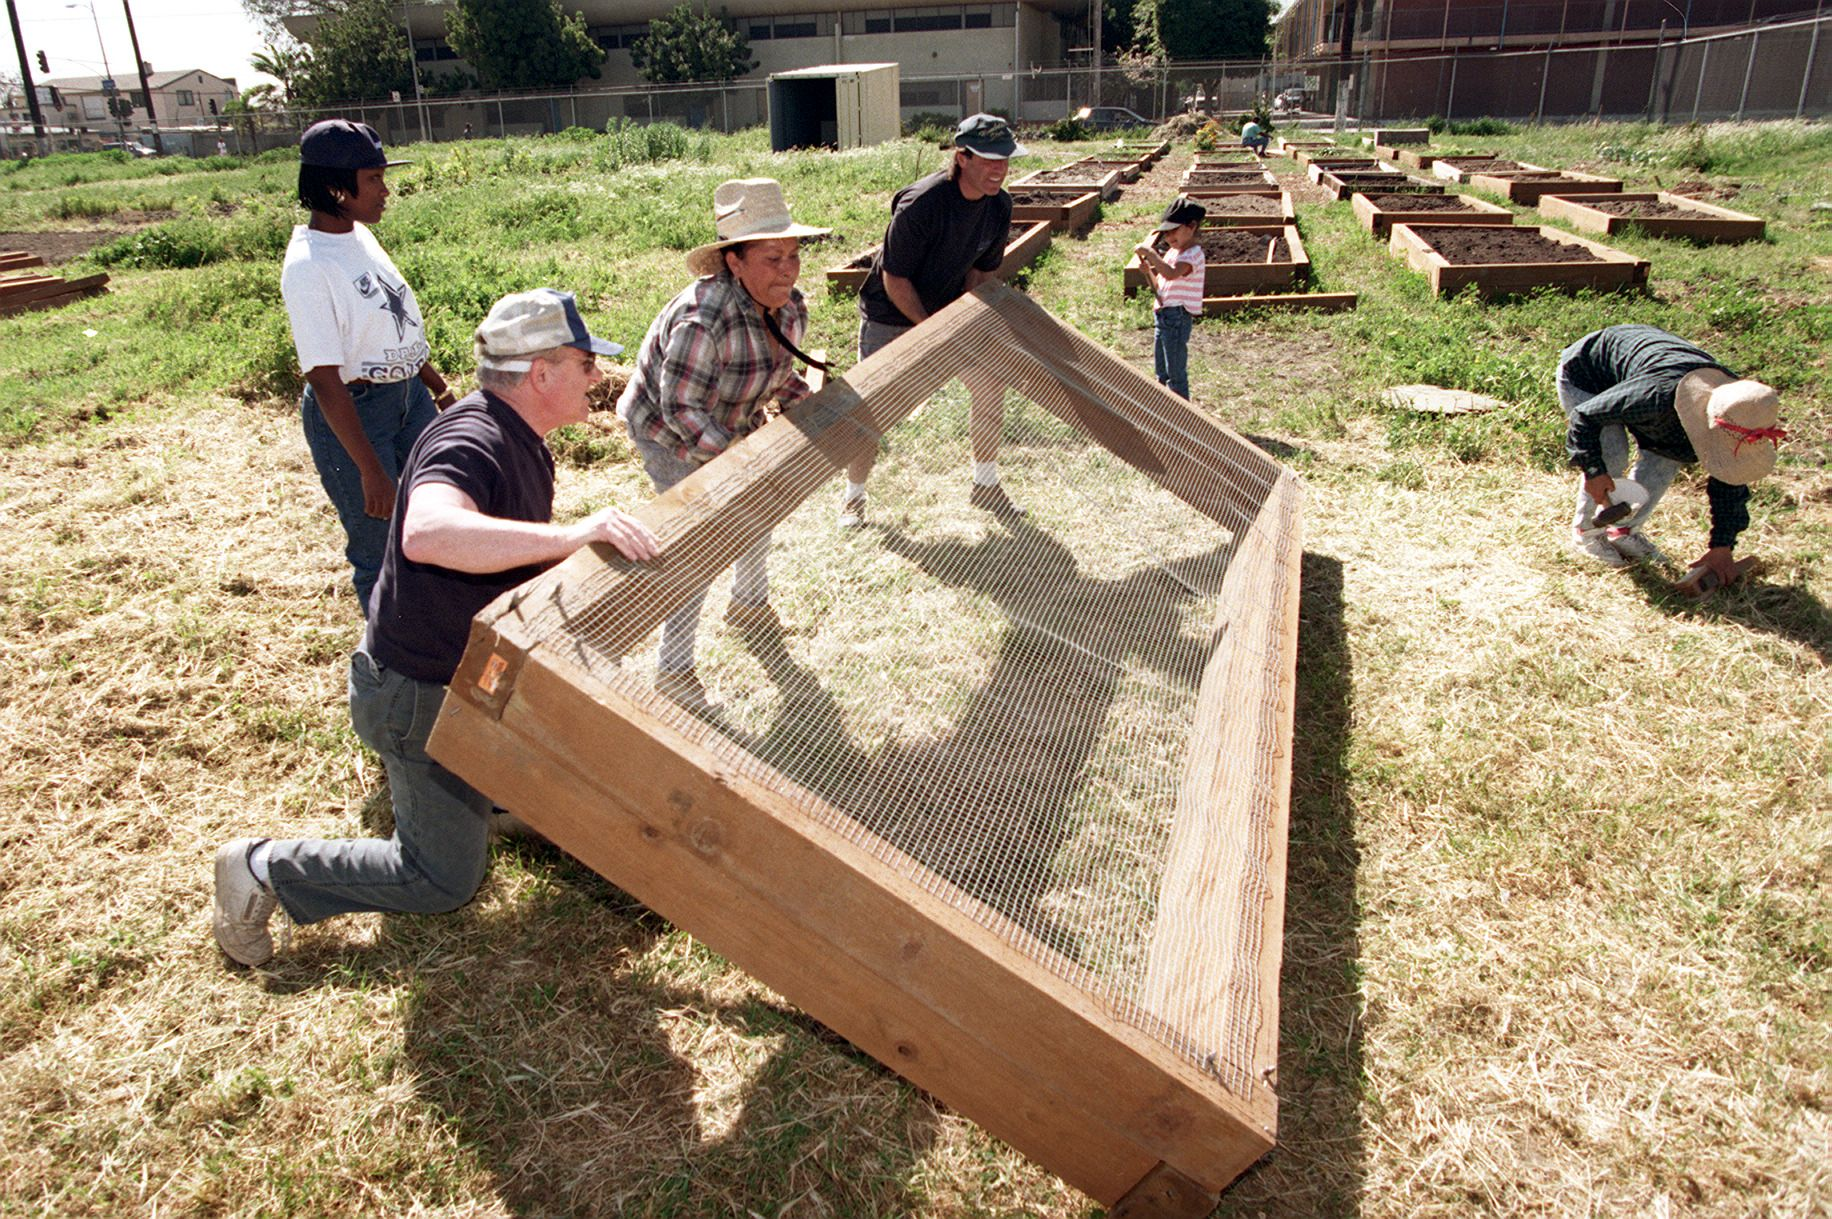 Building a raised garden bed frame that includes protection from burrowing animals